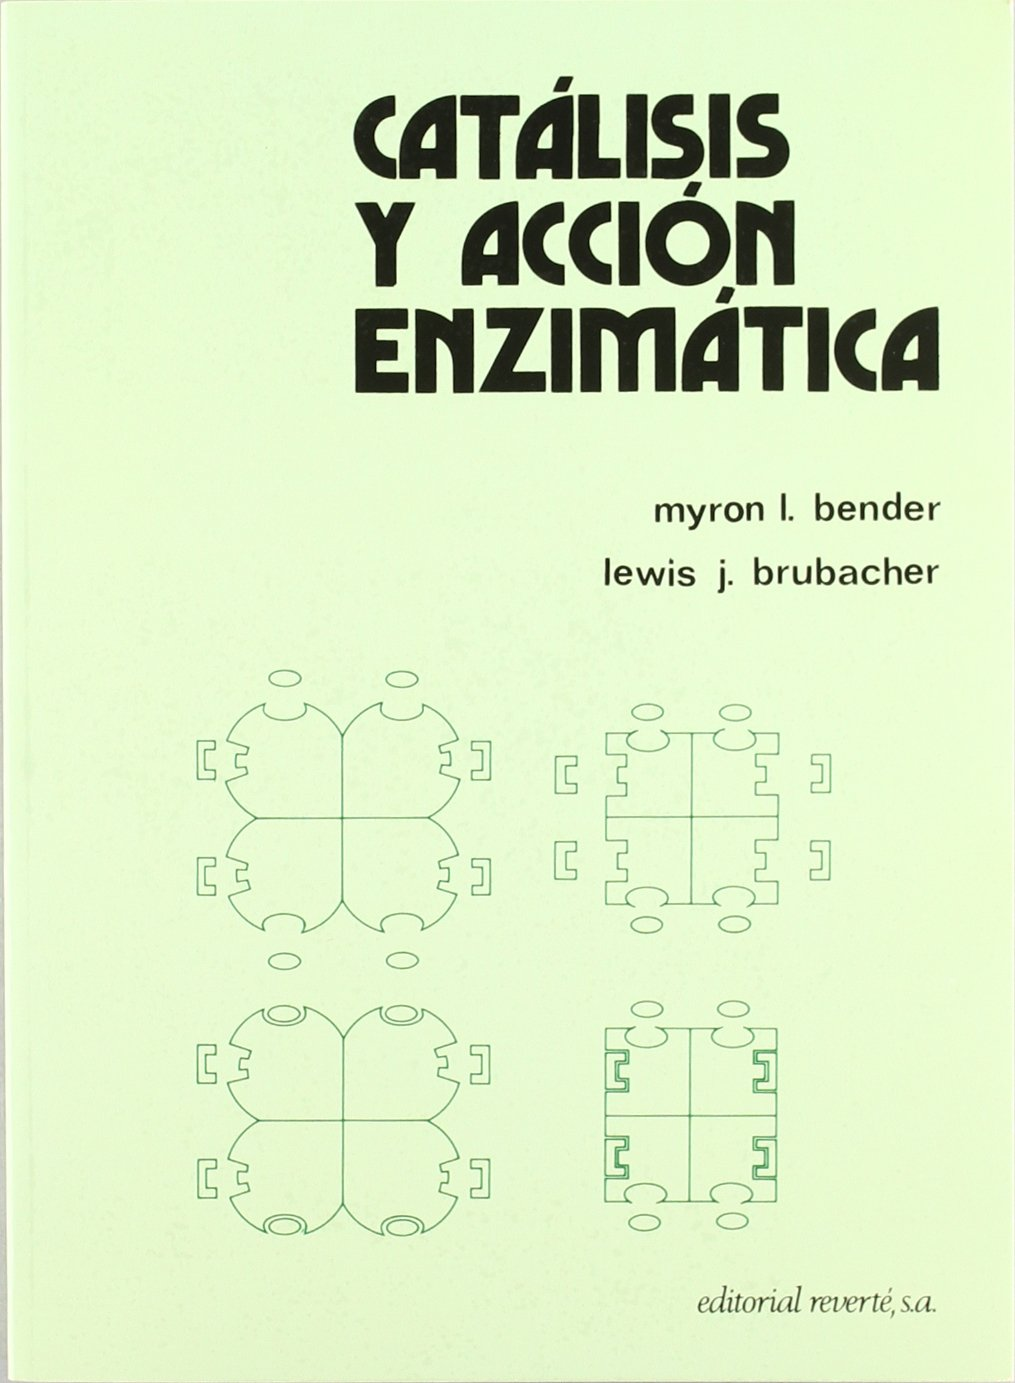 CATALISIS Y ACCION ENZIMATICA: MYRON BENDER: 9788429170467: Amazon ...